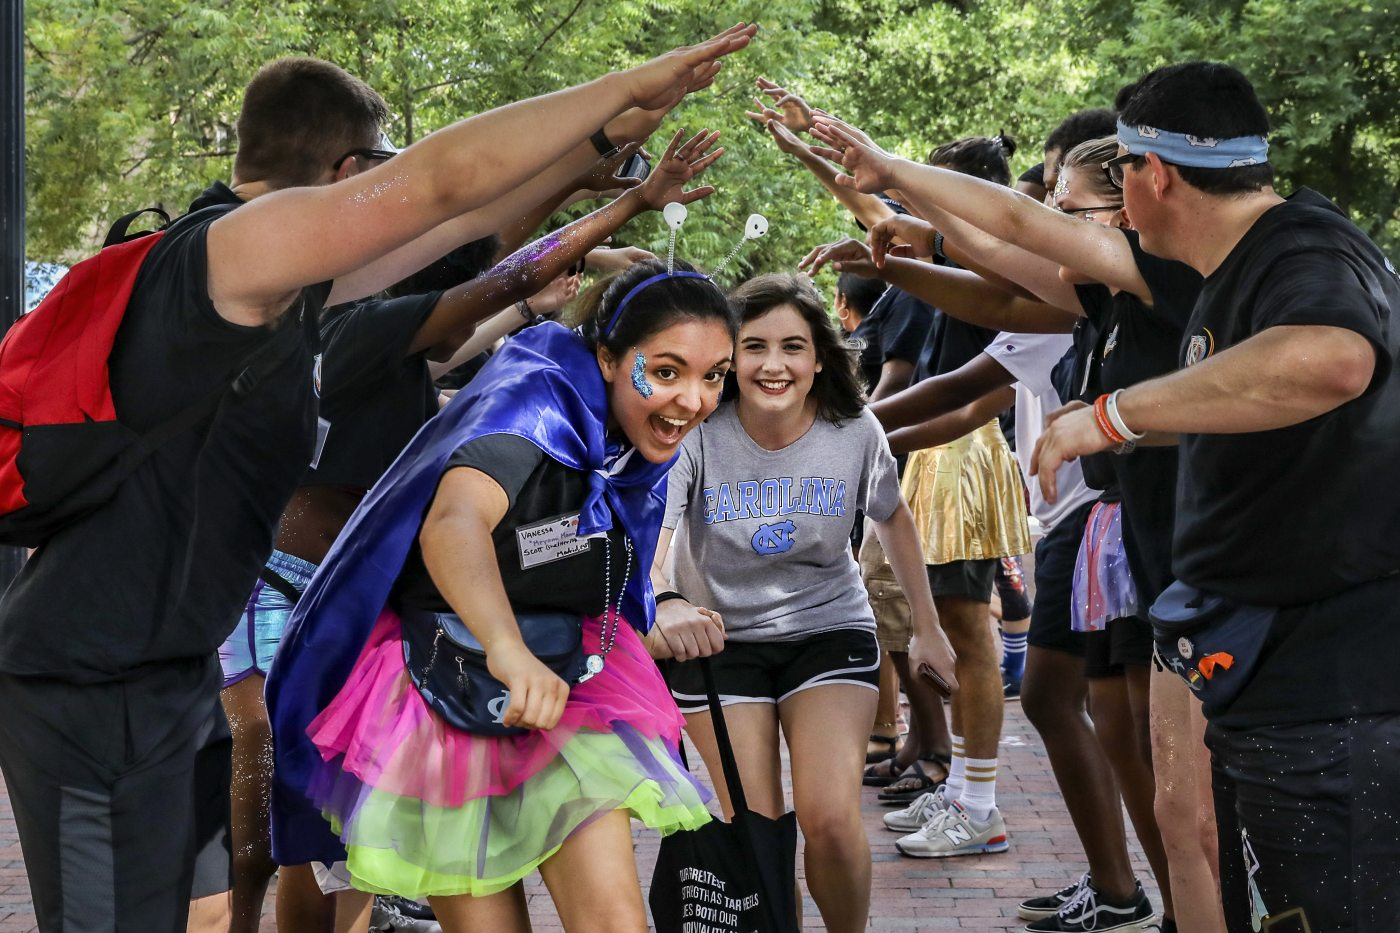 Students run through a tunnel of people.